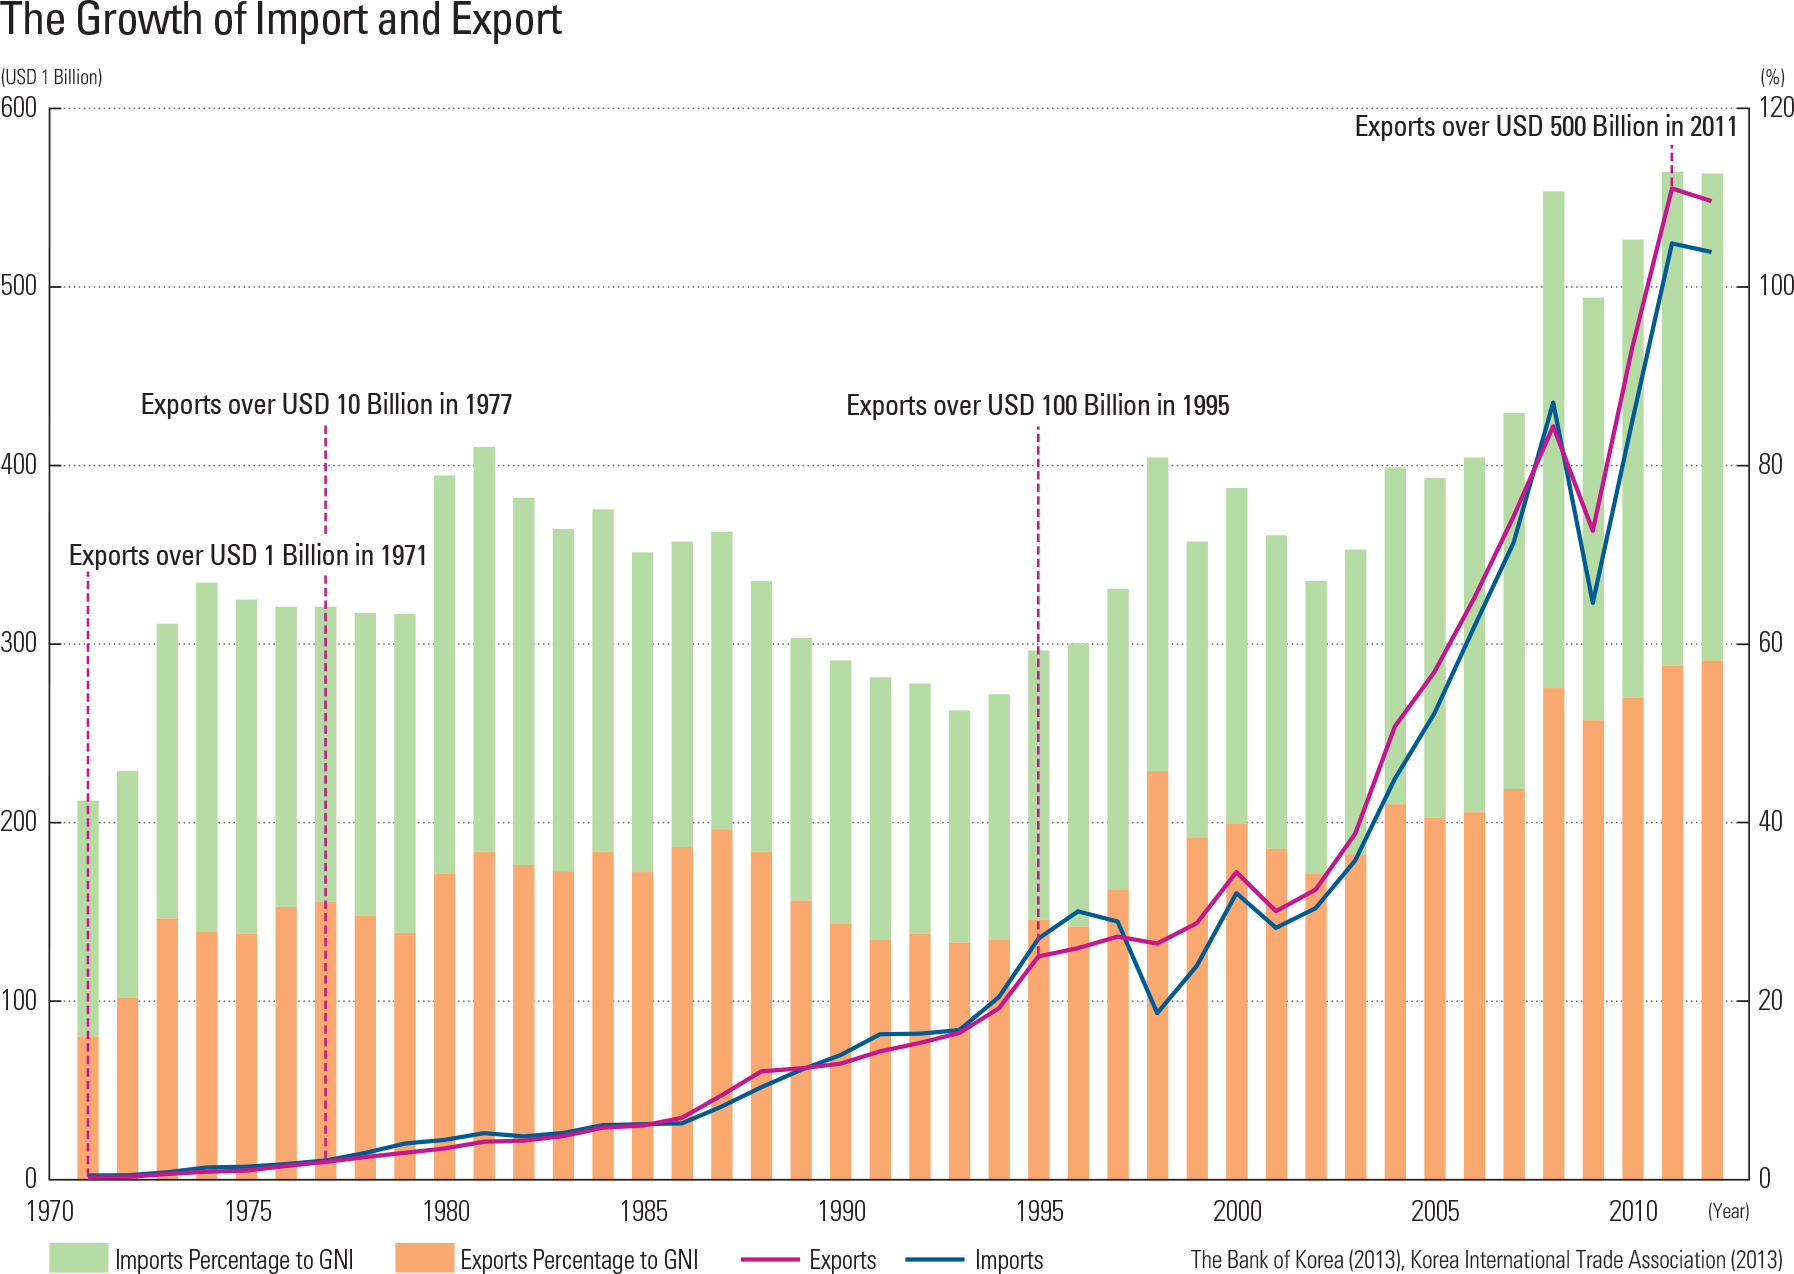 """The Growth of Import and Export<p class=""""oz_zoom"""" zimg=""""http://imagedata.cafe24.com/us_1/us1_97-2_2.jpg""""><span style=""""font-family:Nanum Myeongjo;""""><span style=""""font-size:18px;""""><span class=""""label label-danger"""">UPDATE DATA</span></span></p>"""